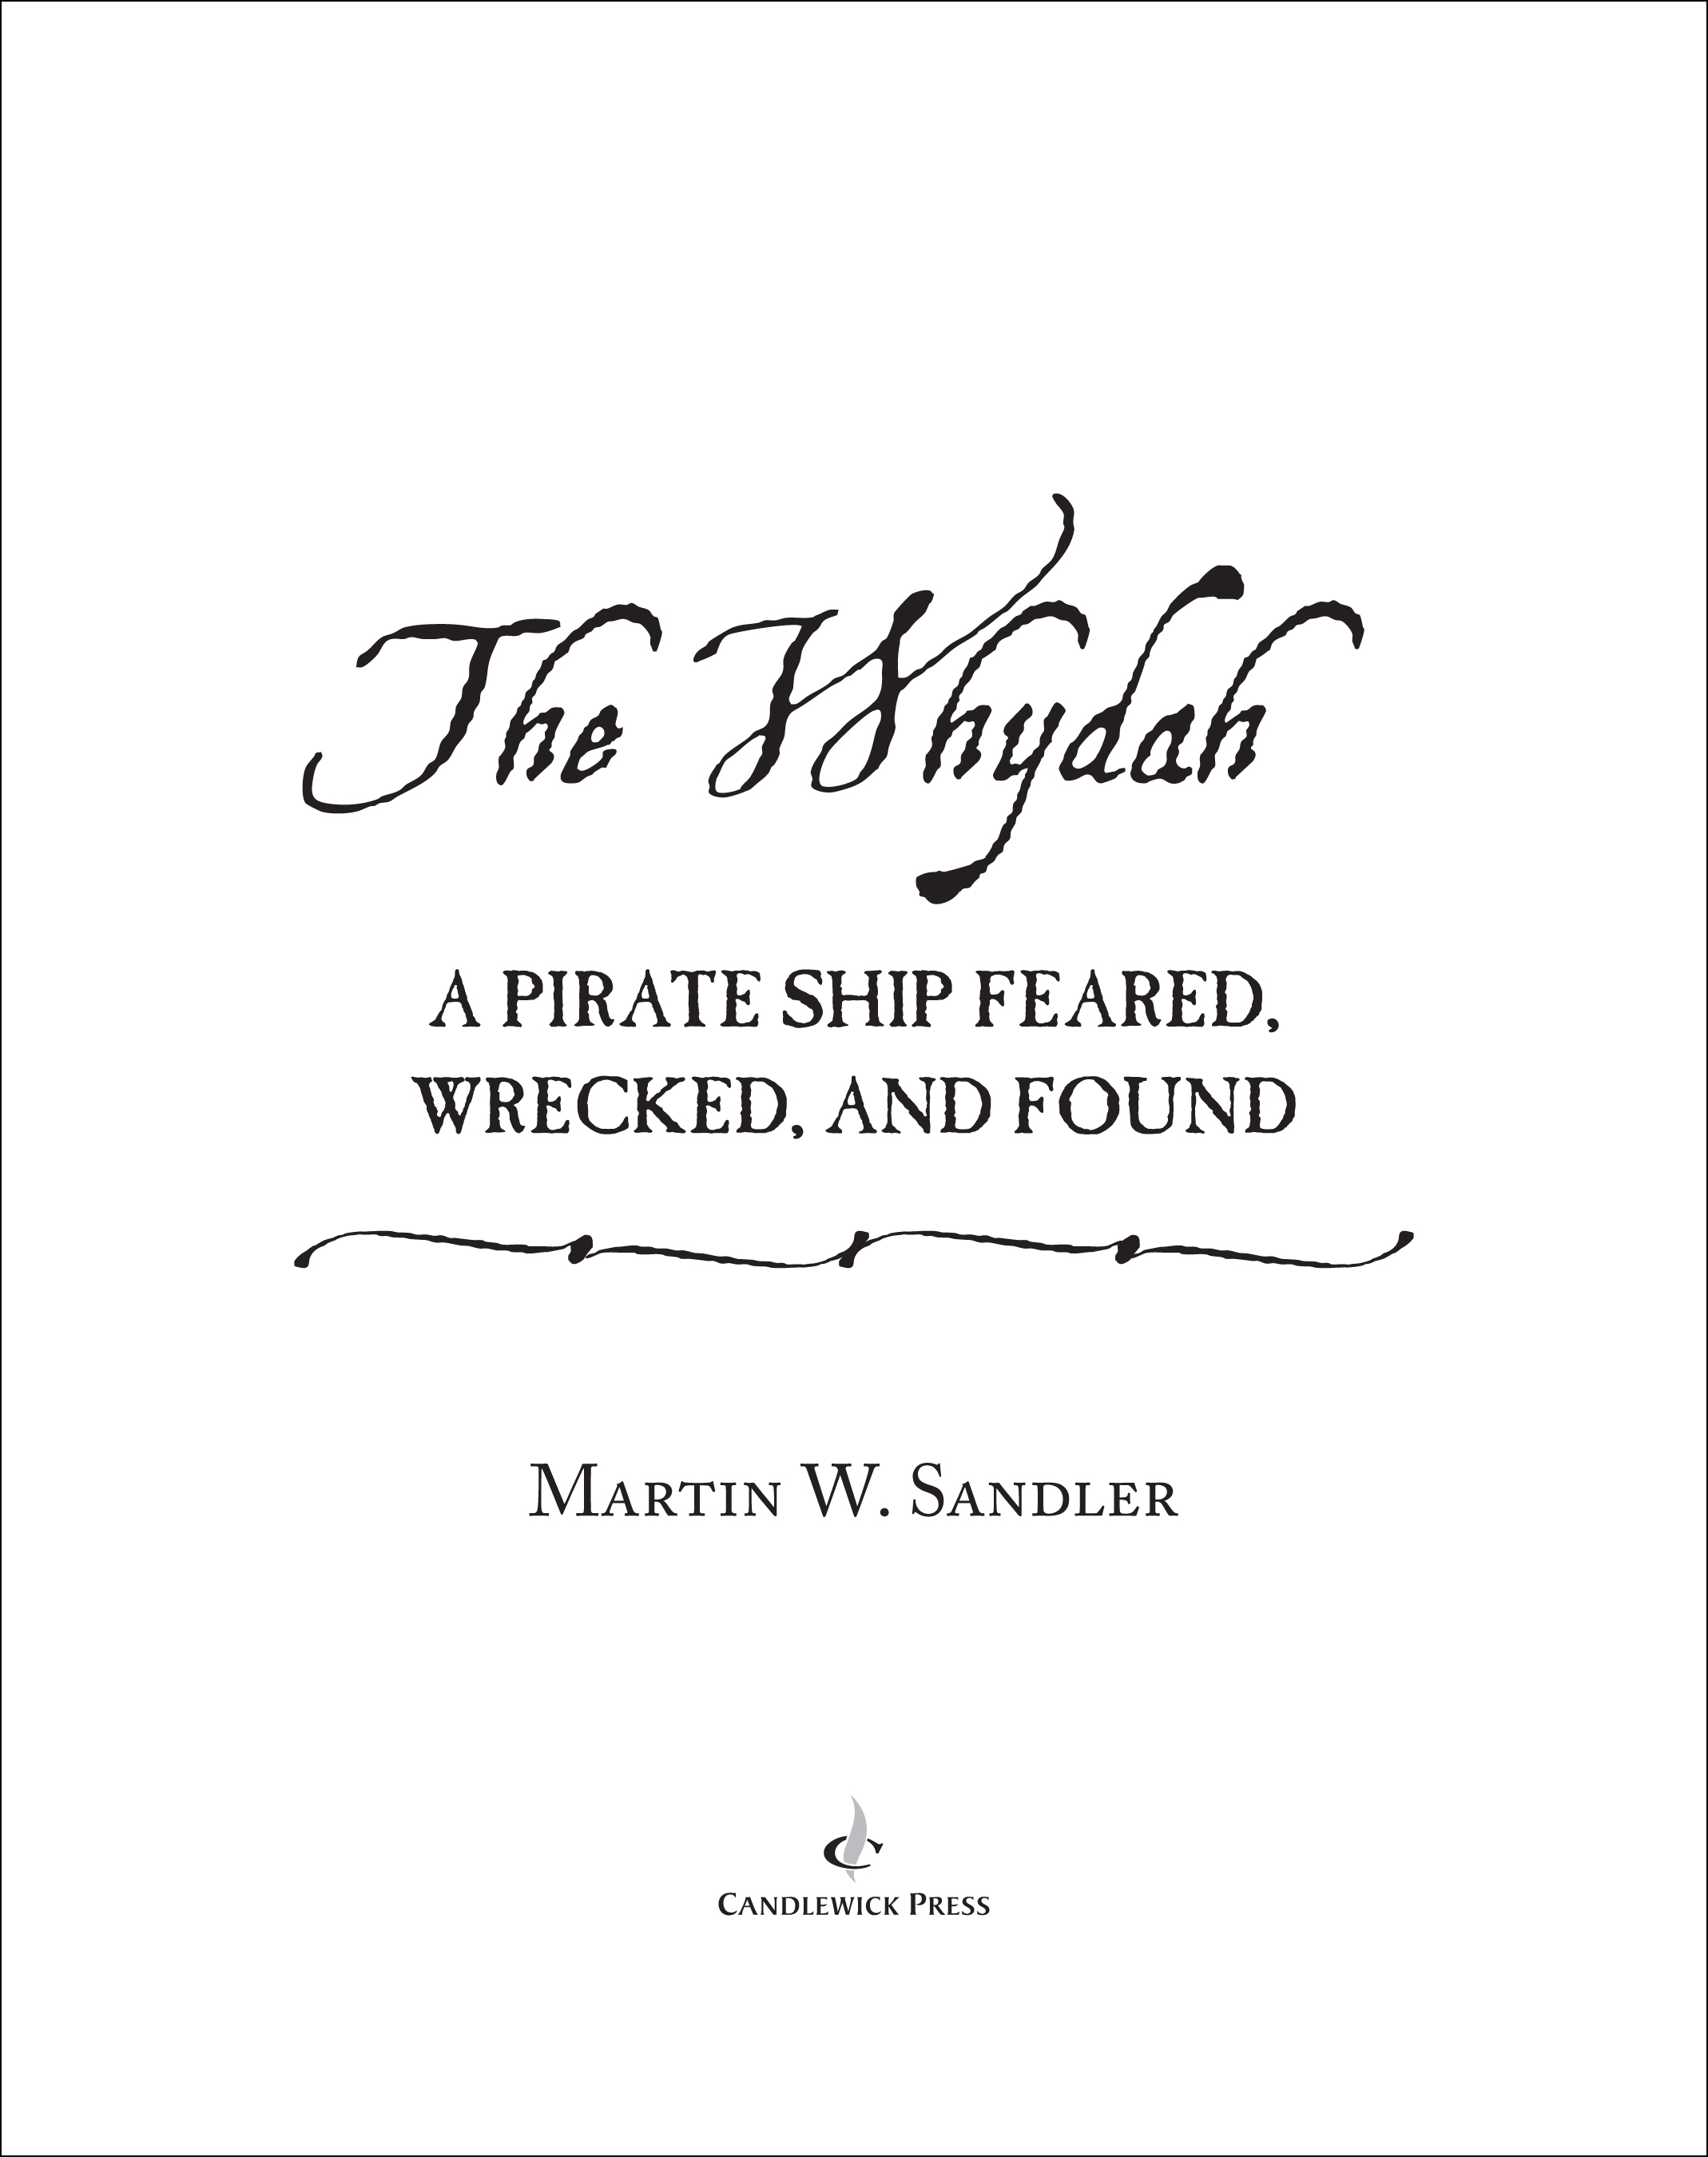 Title page for THE WHYDAH